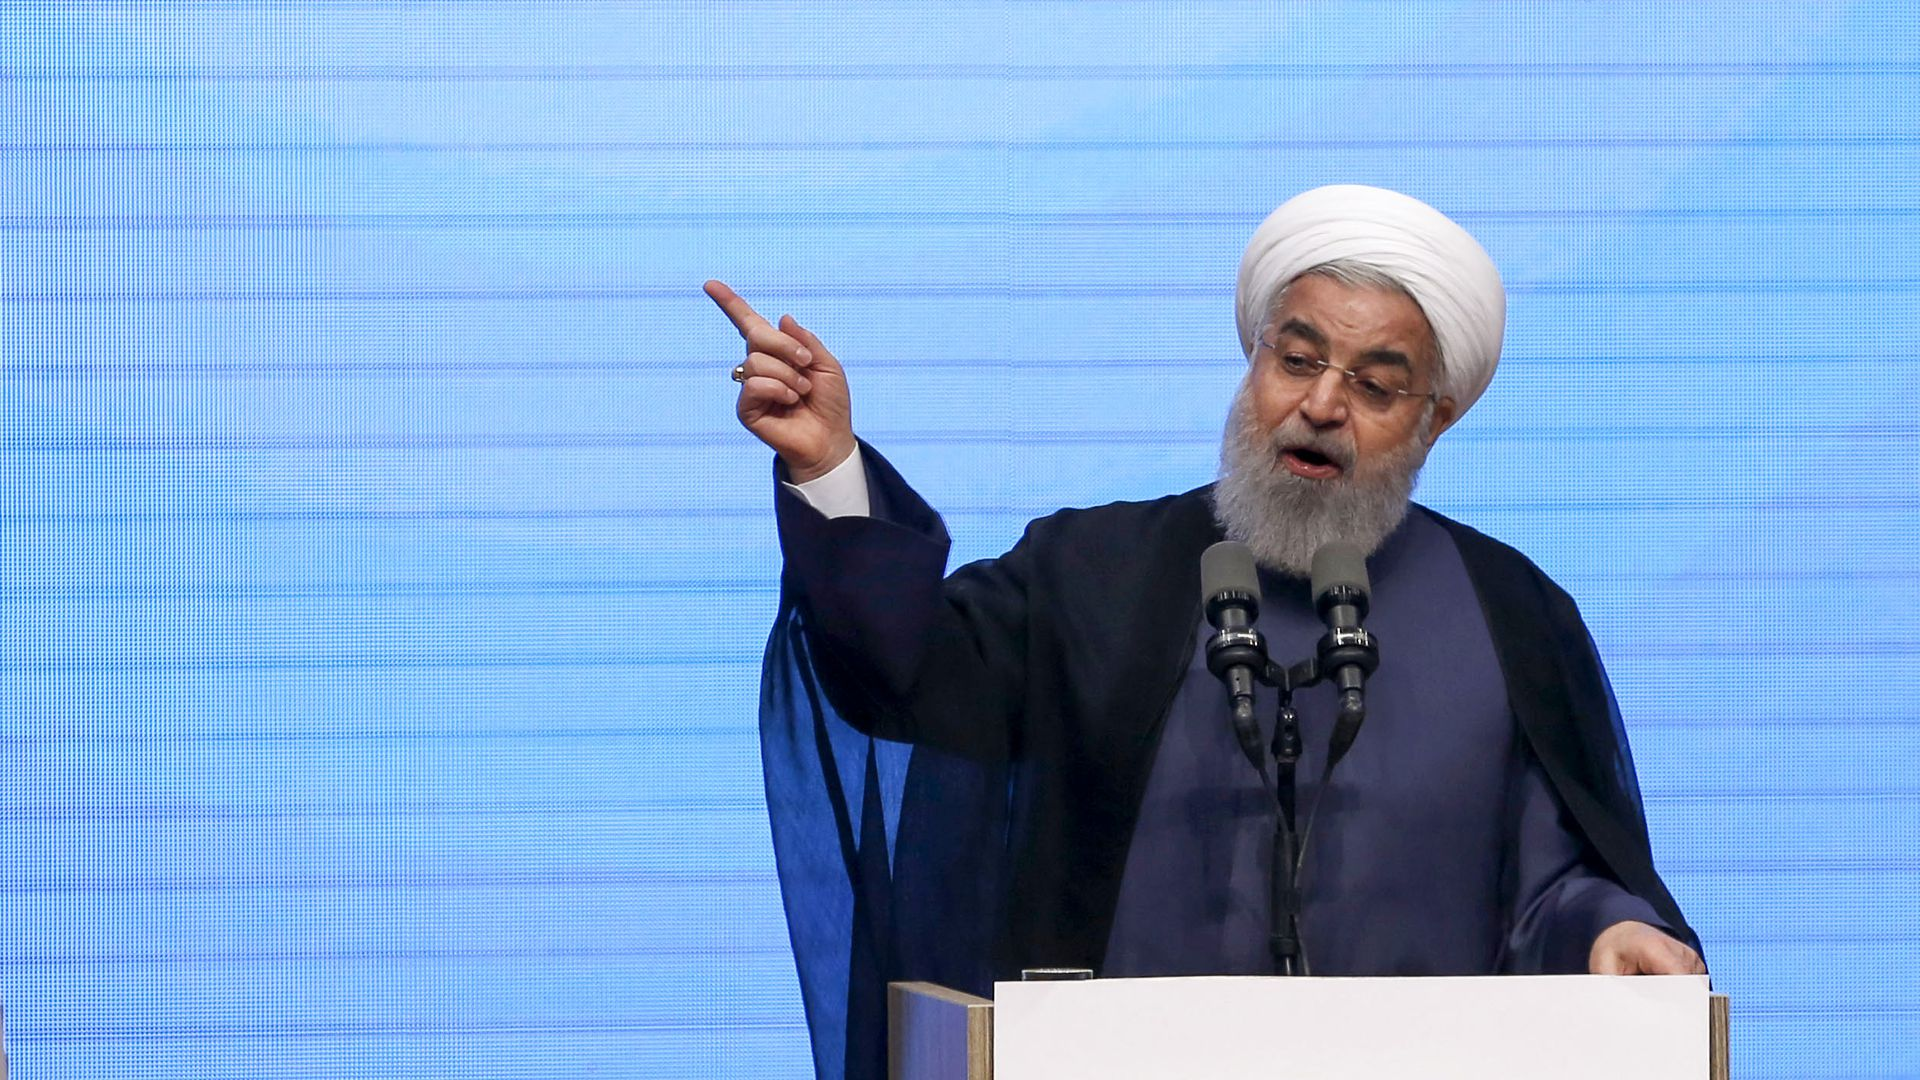 Rouhani gestures and speaks from behind a podium